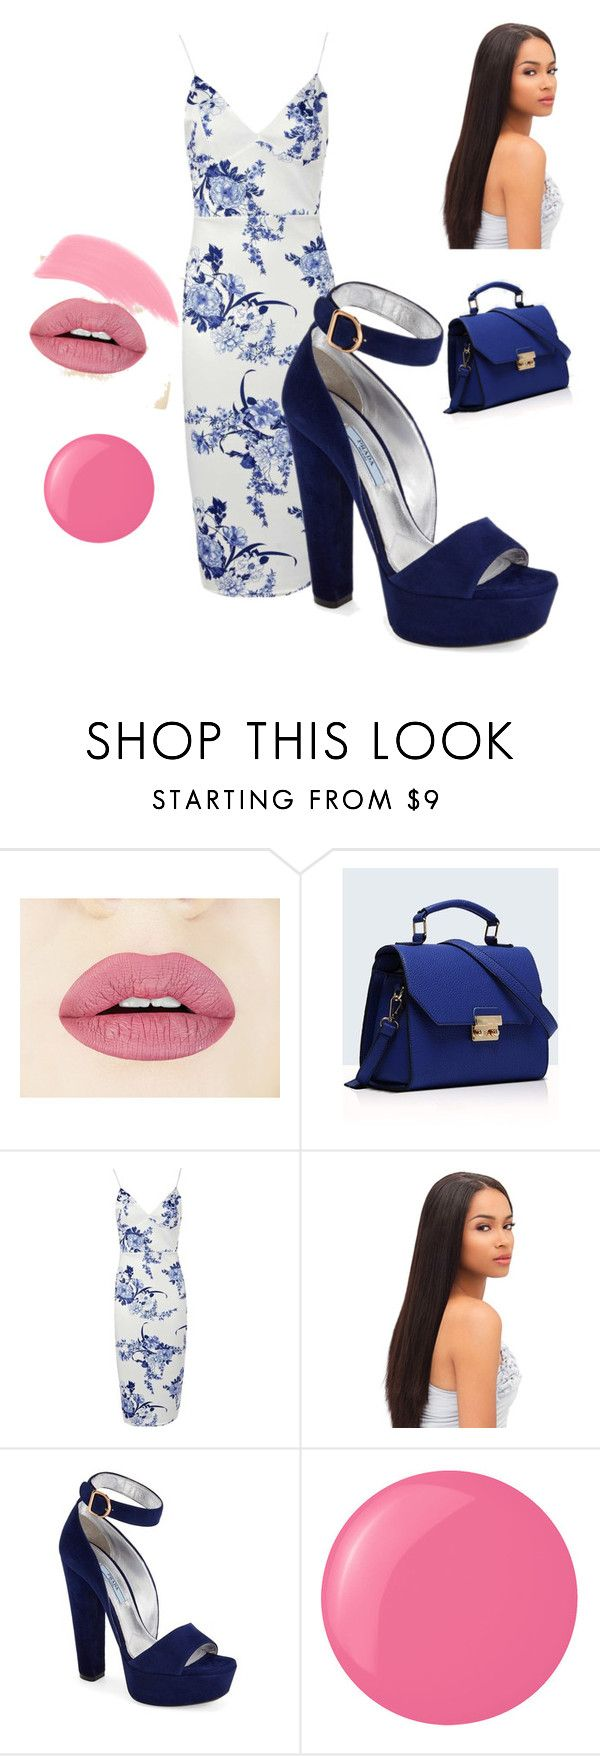 """""""Numero Diez"""" by dhaira ❤ liked on Polyvore featuring Relaxfeel, Prada, Essie and Stila"""